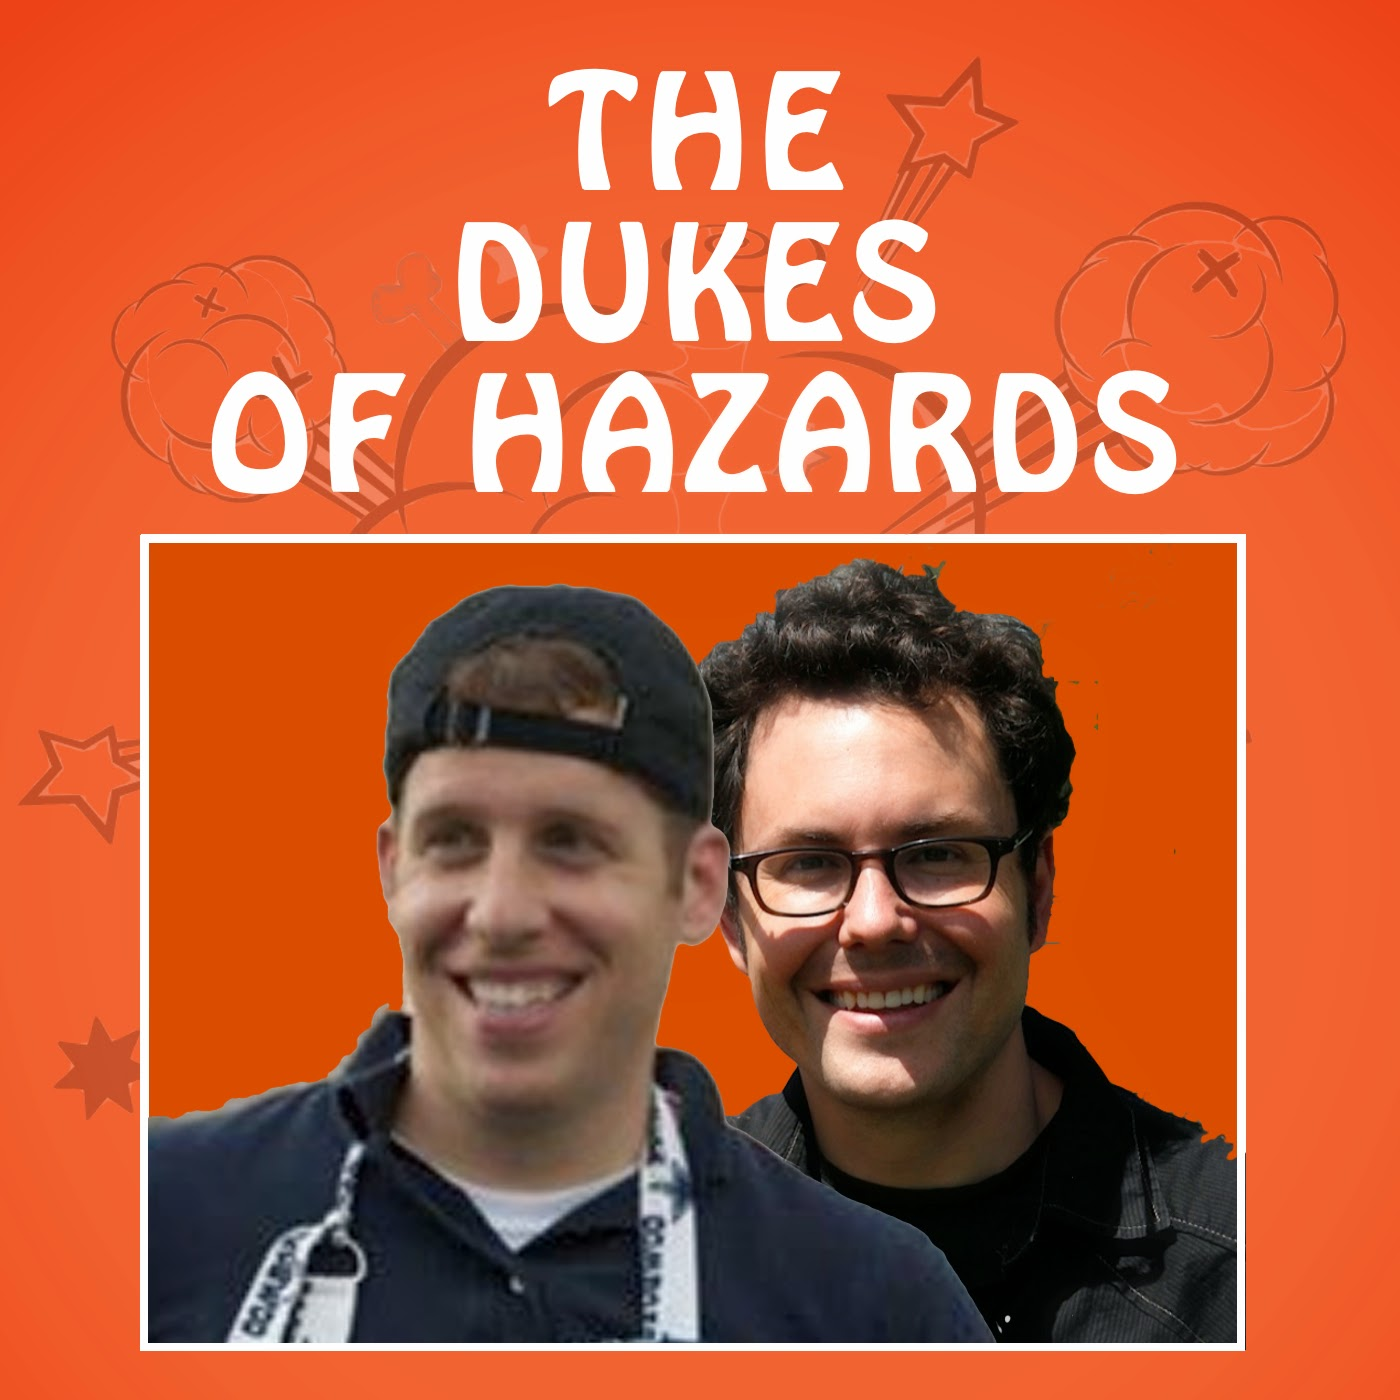 Dukes of Hazards